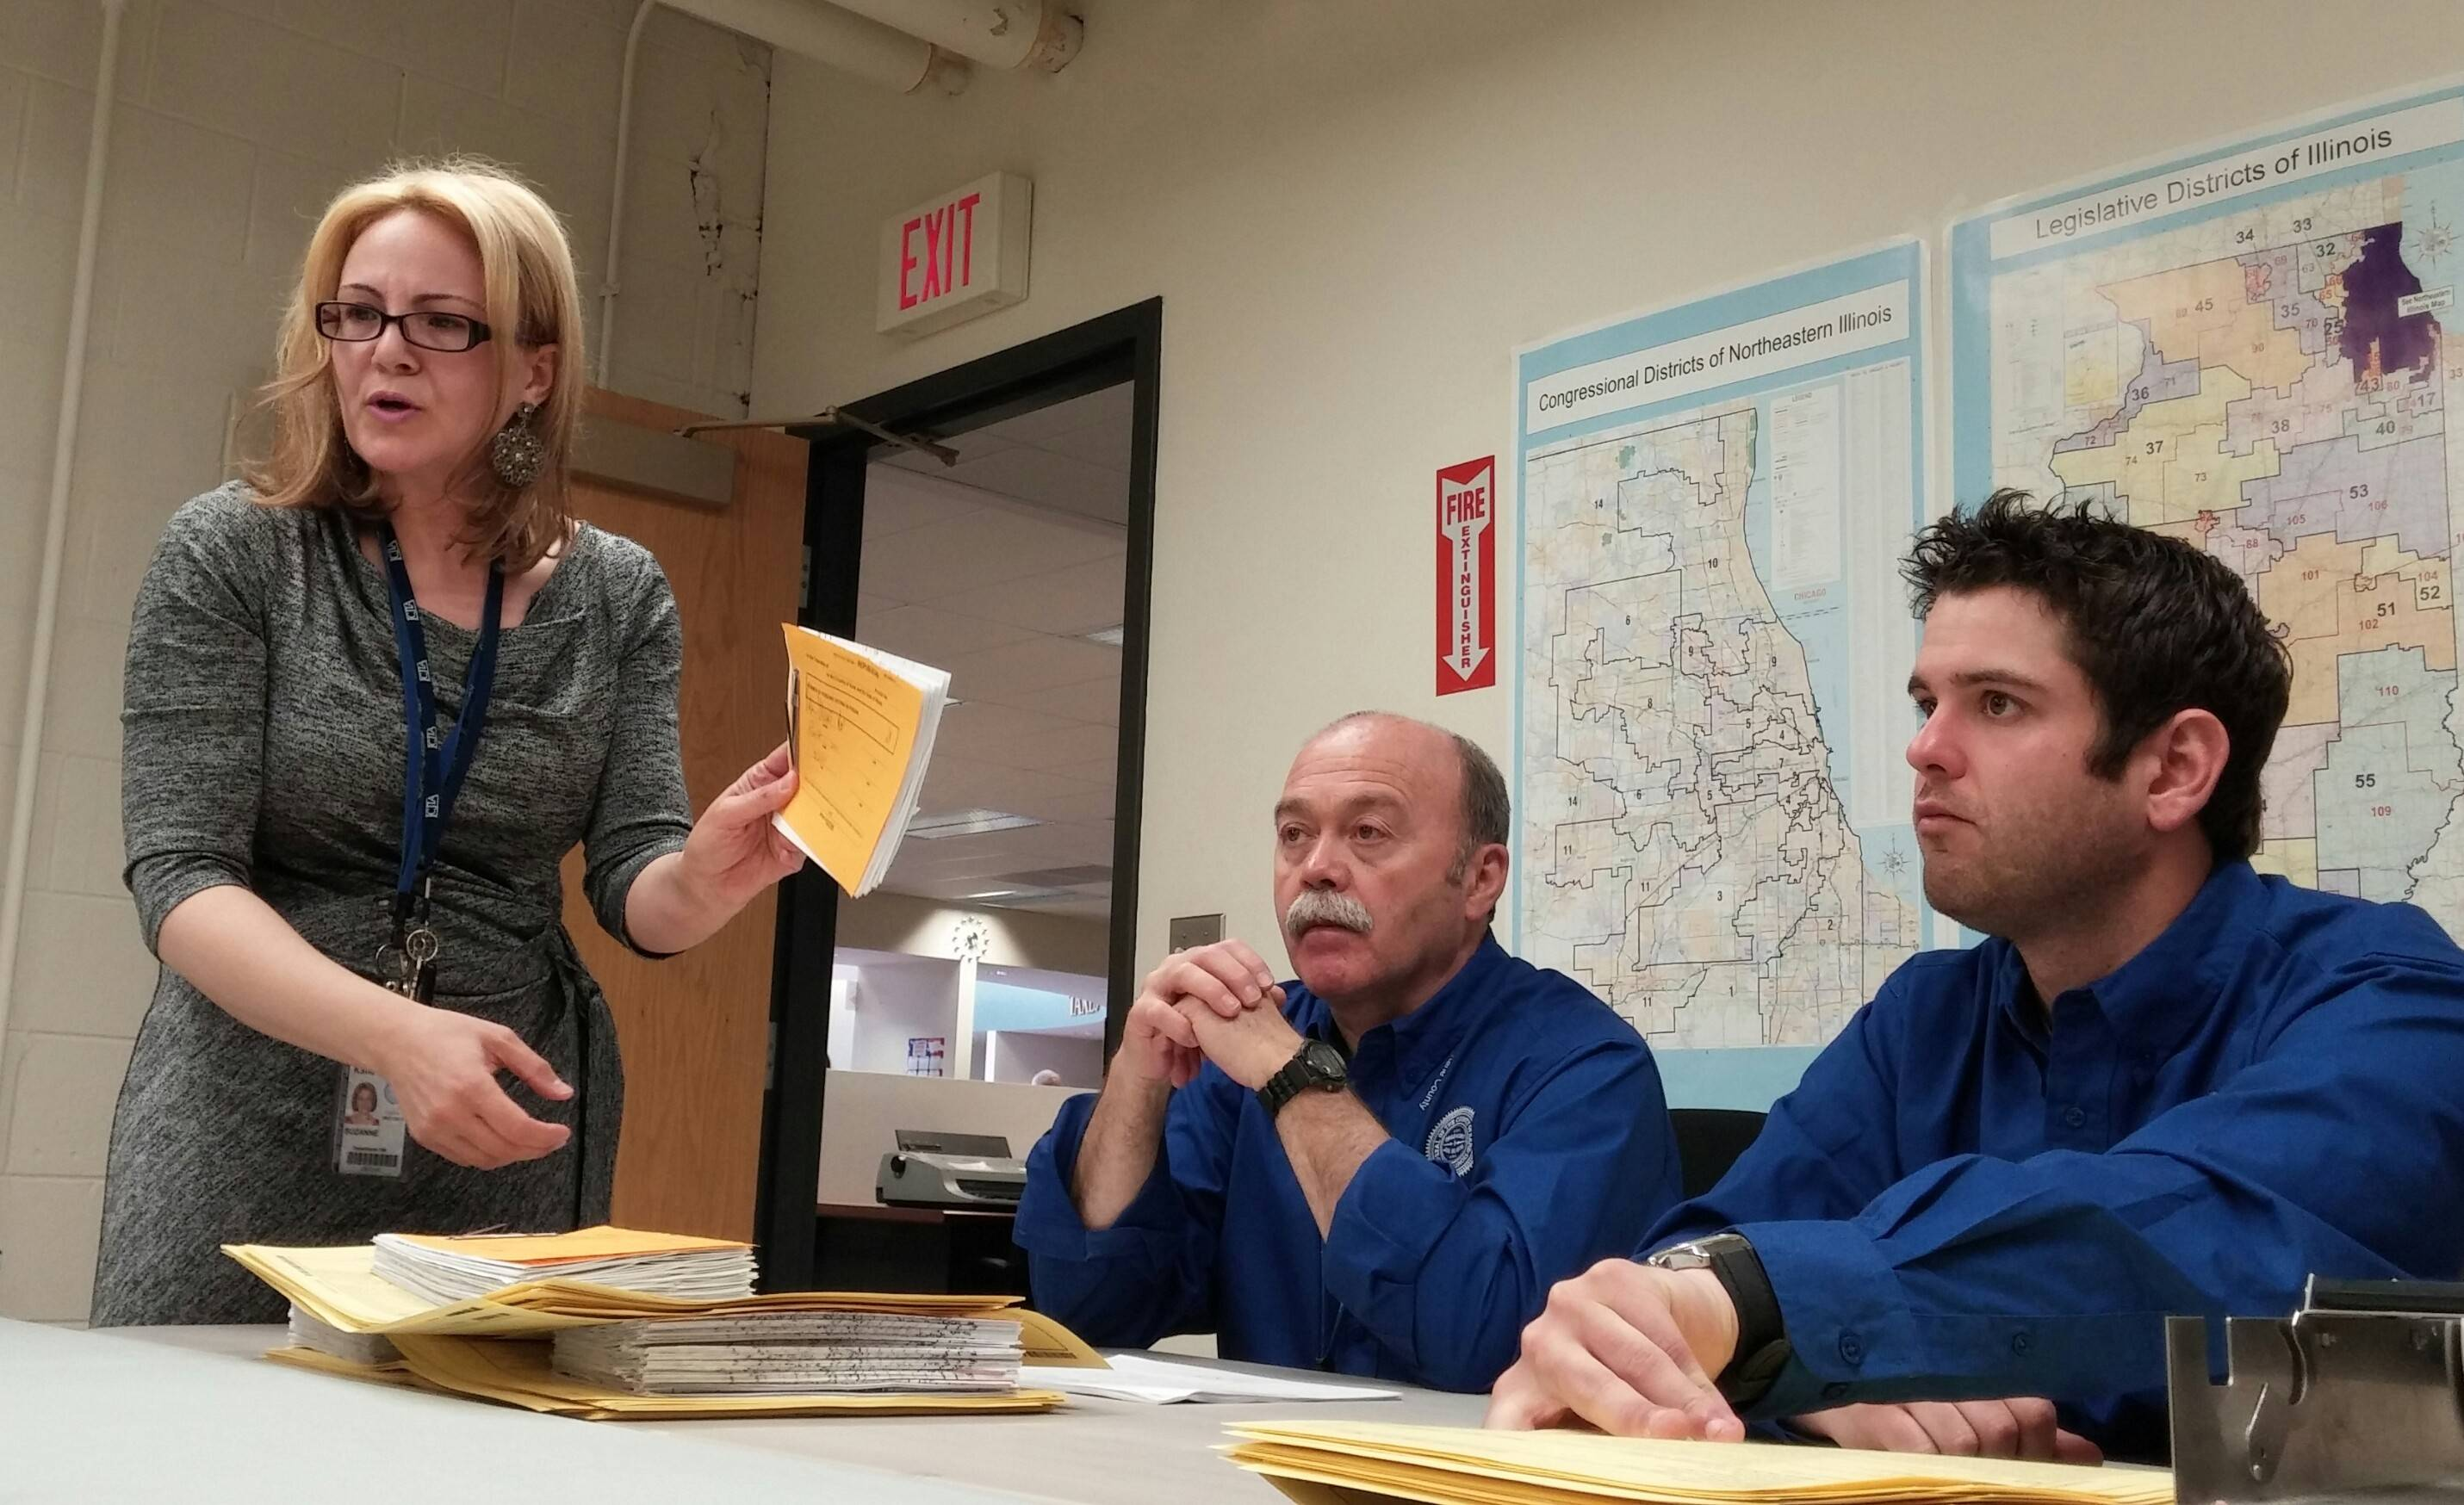 Kane County Director of Elections Suzanne Fahnestock explains a procedure during Monday's discovery recount of 16 precincts in the race between D.J. Tegeler and Marmarie Kostelny for the GOP nomination for Kane County Circuit judge.